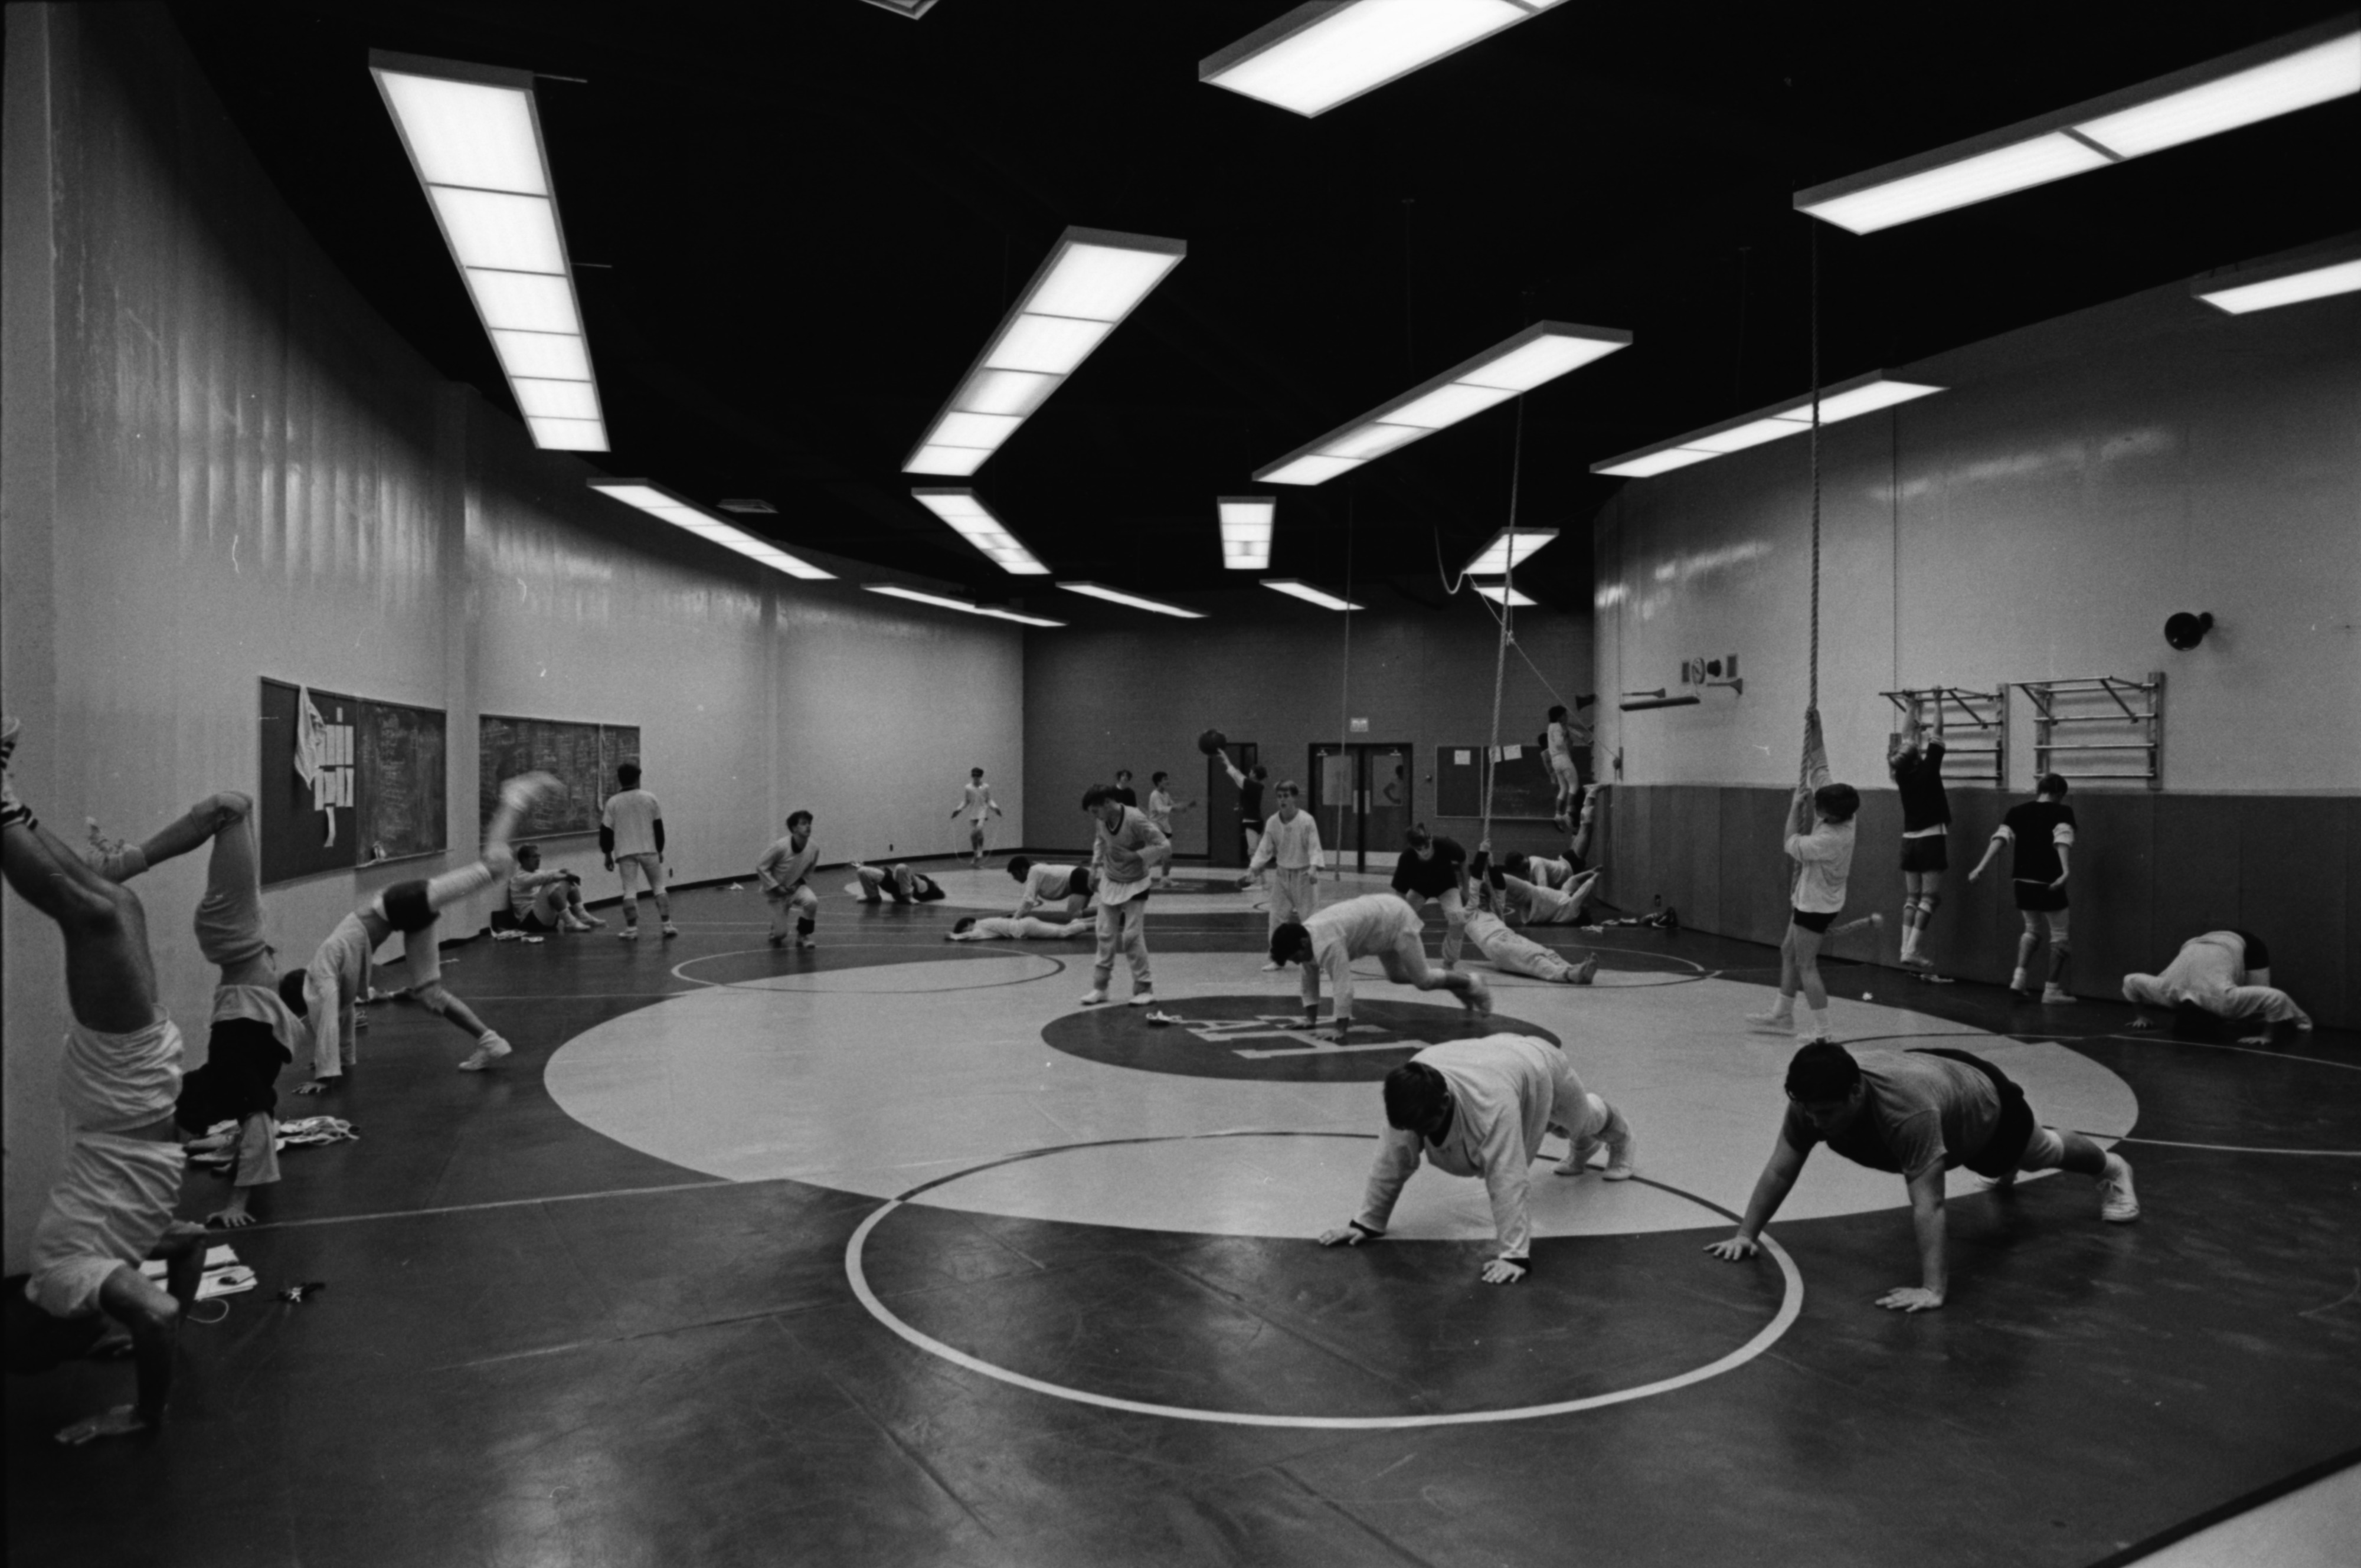 Students in Training, November 1969 image